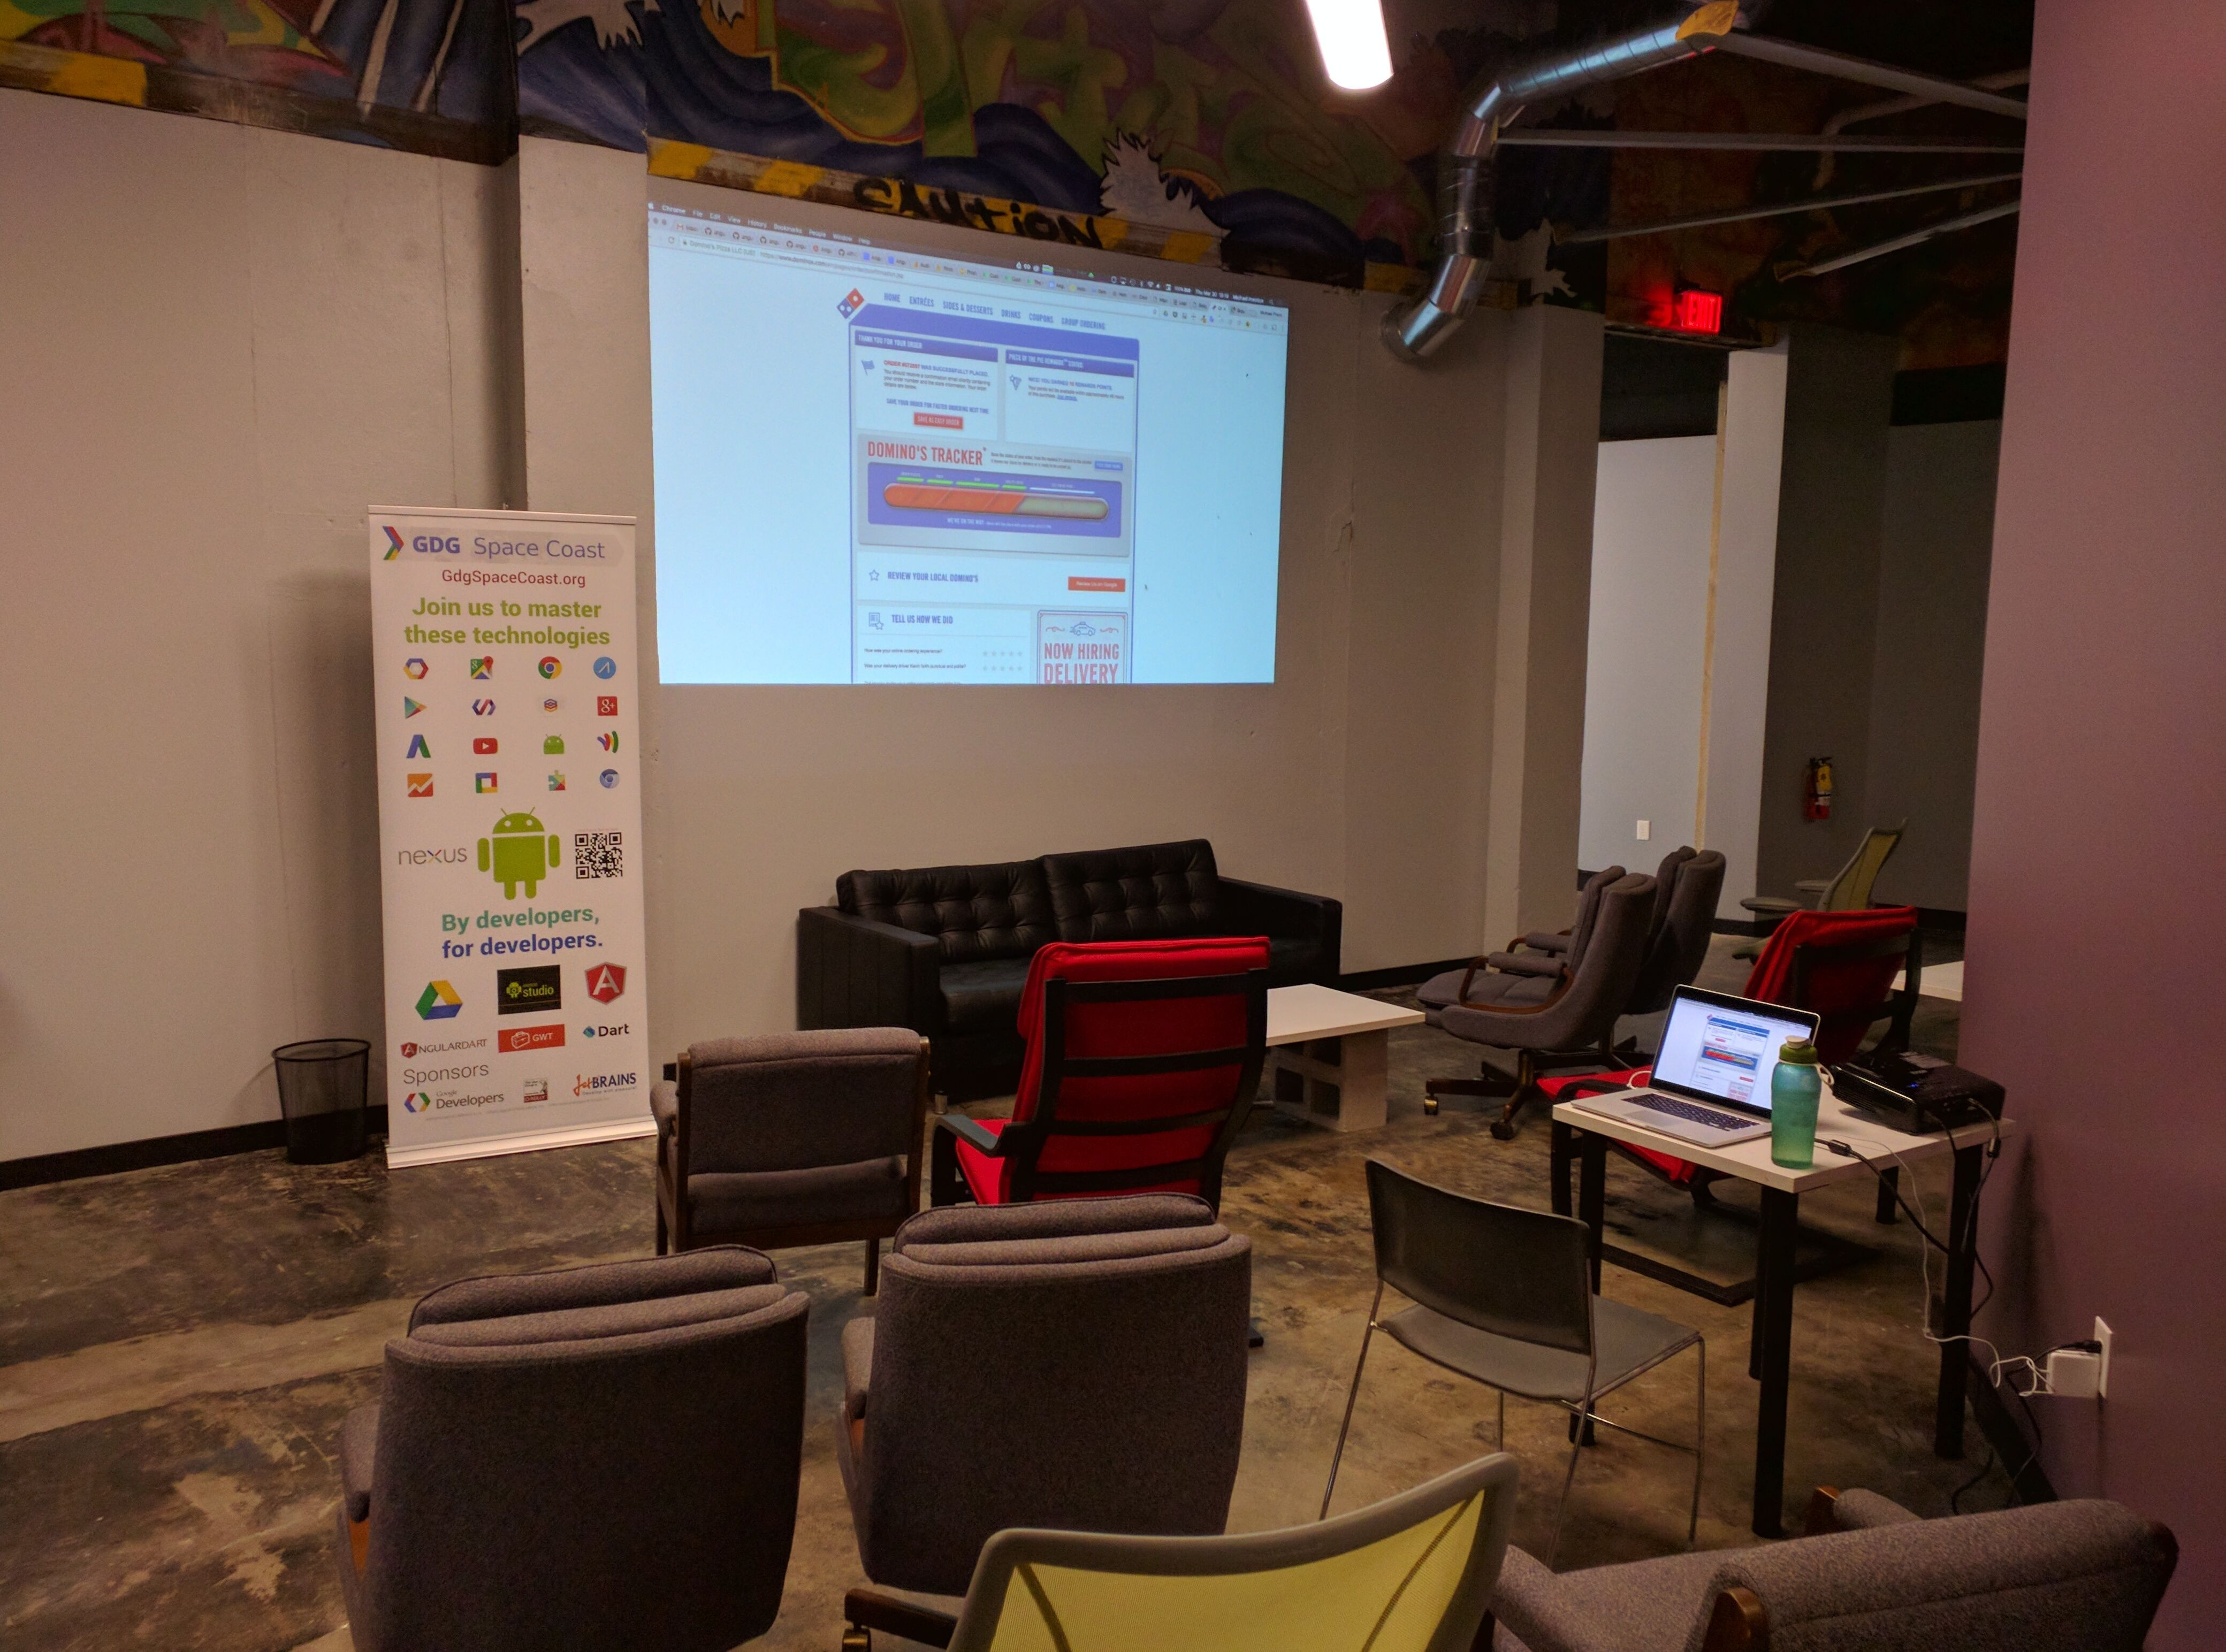 GDG Space Coast - Google Developers Group